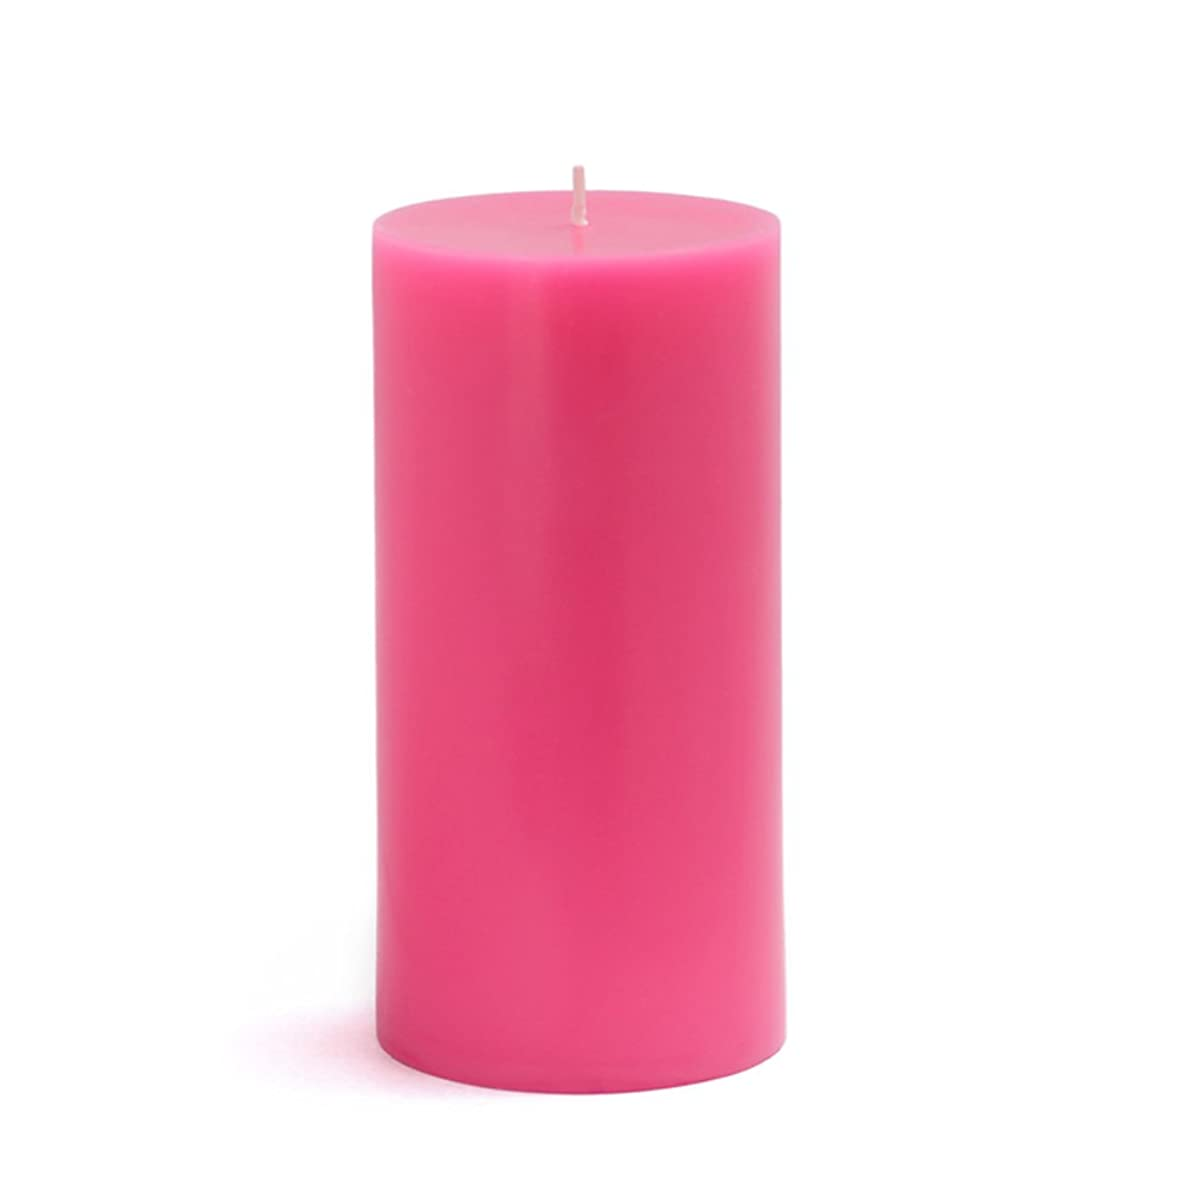 贅沢転倒支配的Zest Candle CPZ-084-12 3 x 6 in. Hot Pink Pillar Candles-12pcs-Case - Bulk